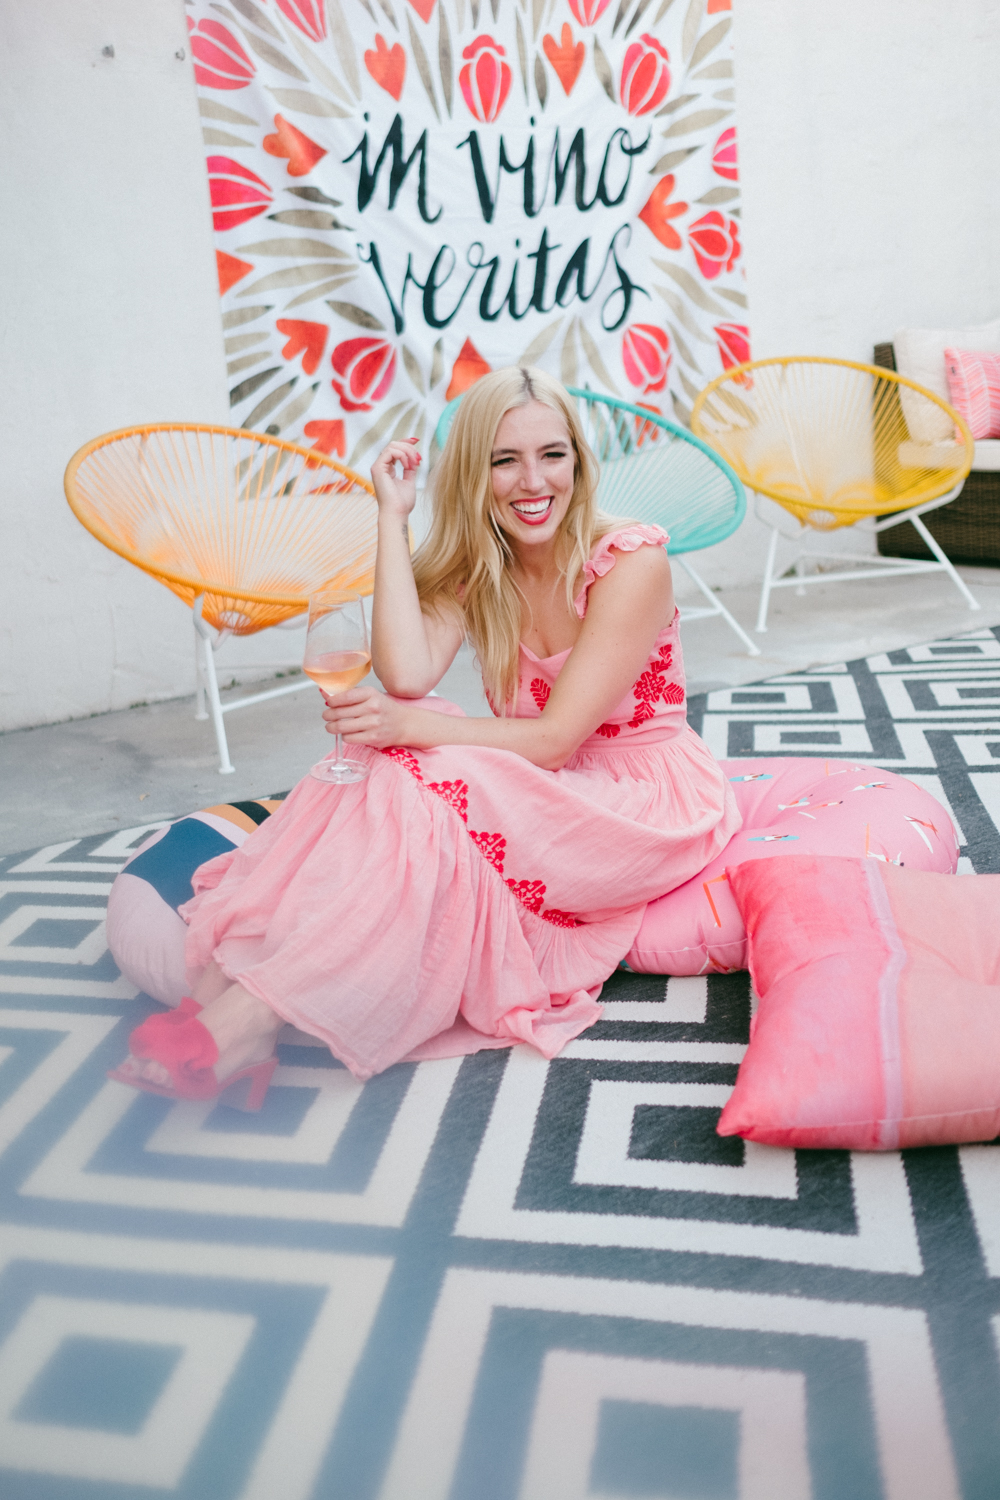 blonde woman wearing pink dress and sitting on the floor with pillows